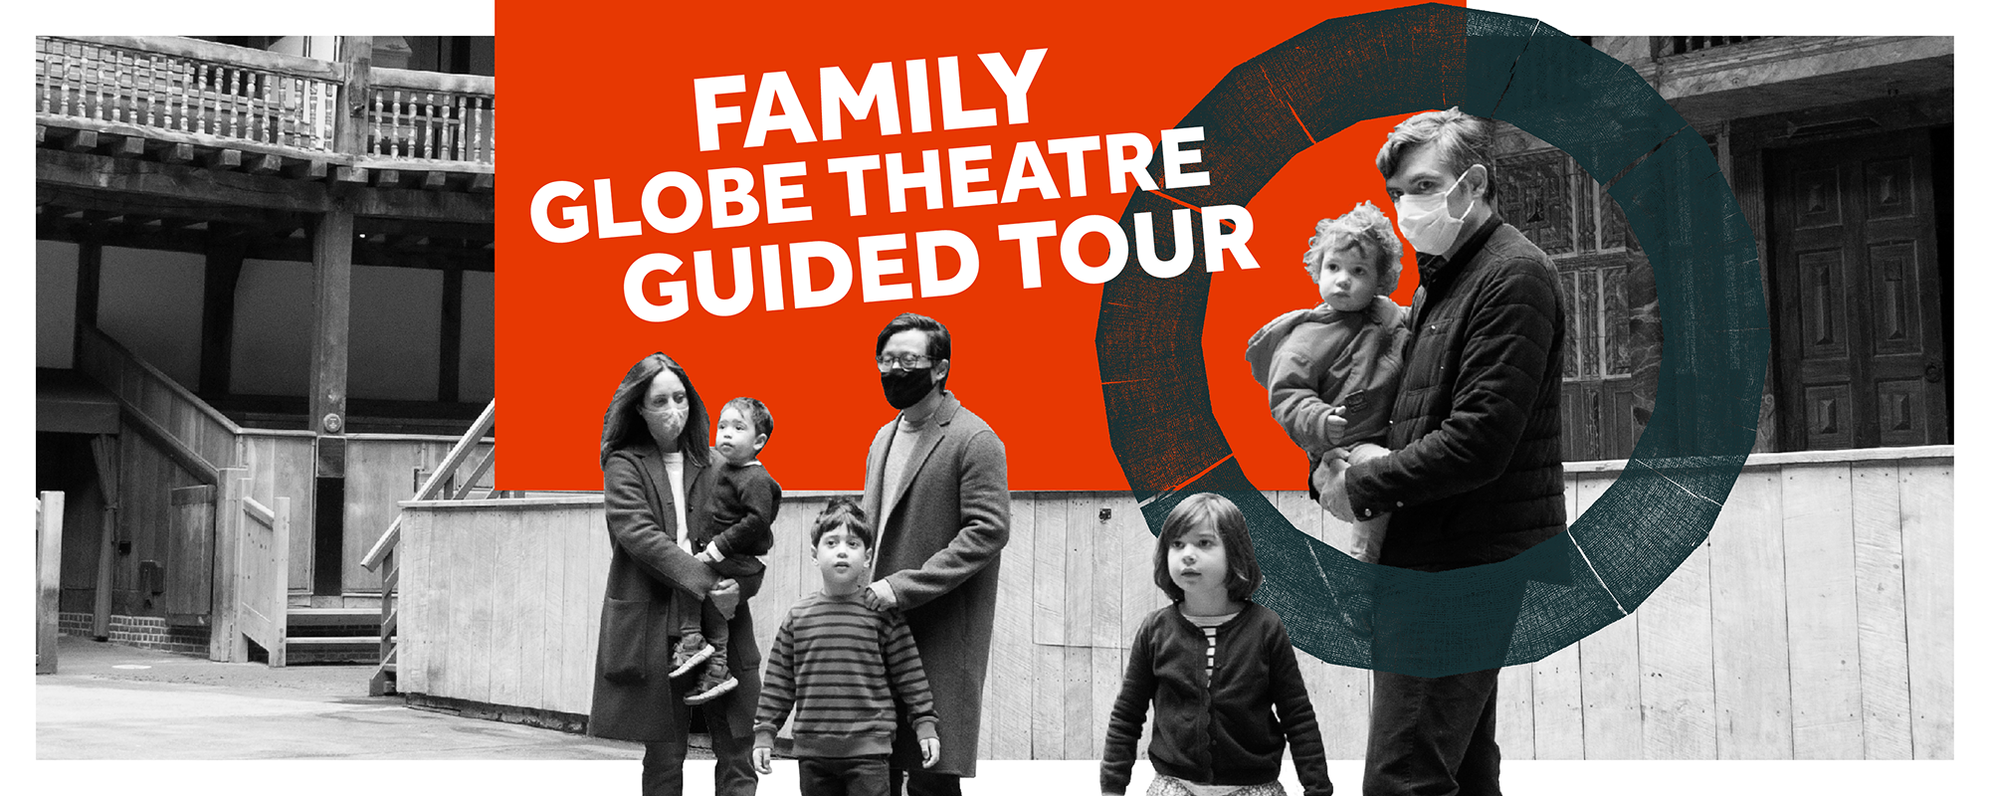 A couple of families stand in front of a stage and the words 'Family Globe Theatre Guided Tour' appear across a red box at the top of the image